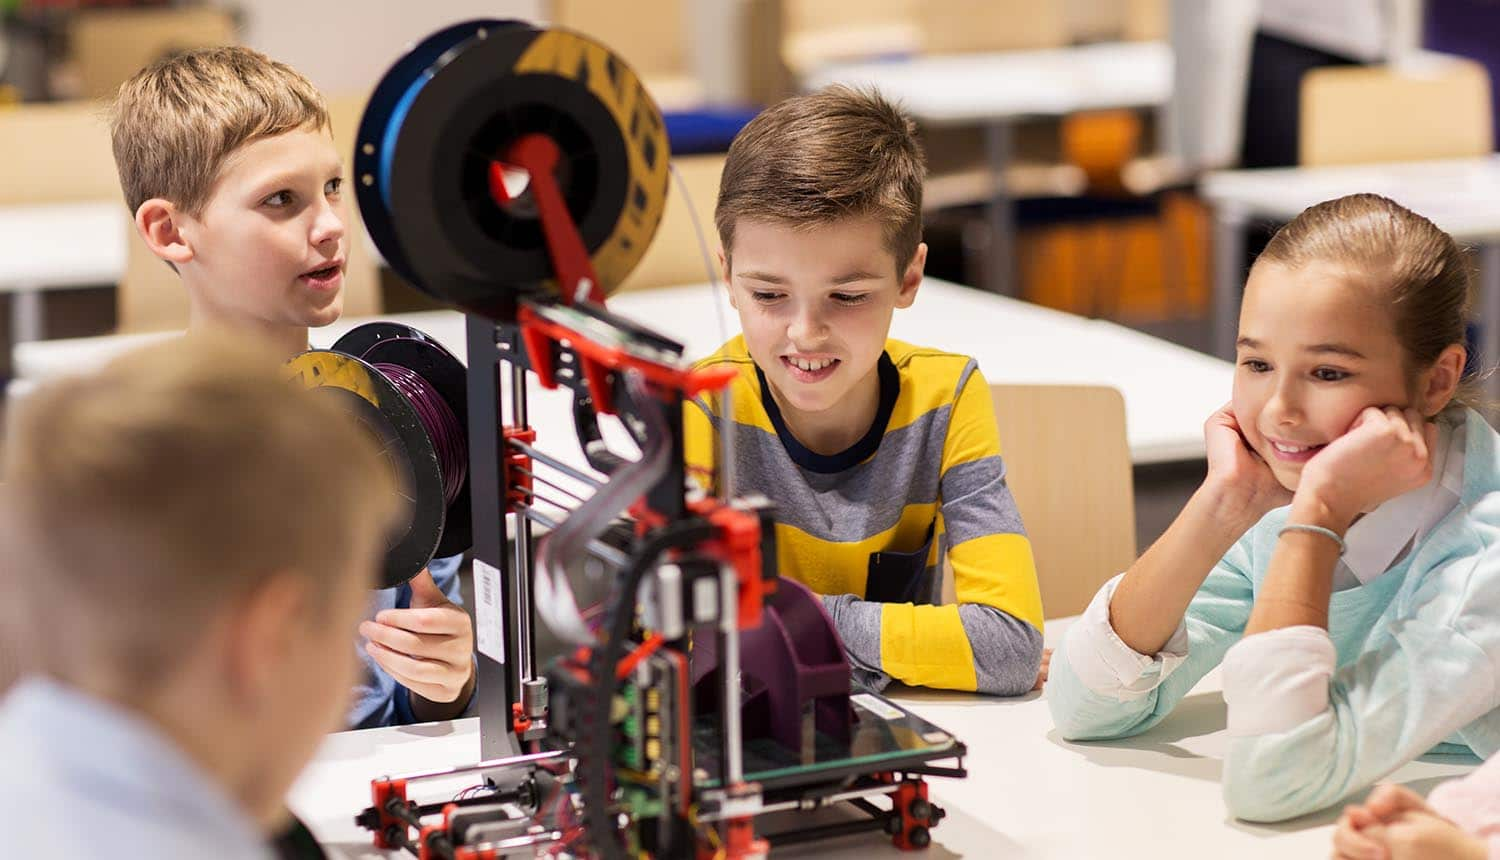 Children in robotic class showing the impacts of data protection and GDPR on U.K. schools and educational establishments